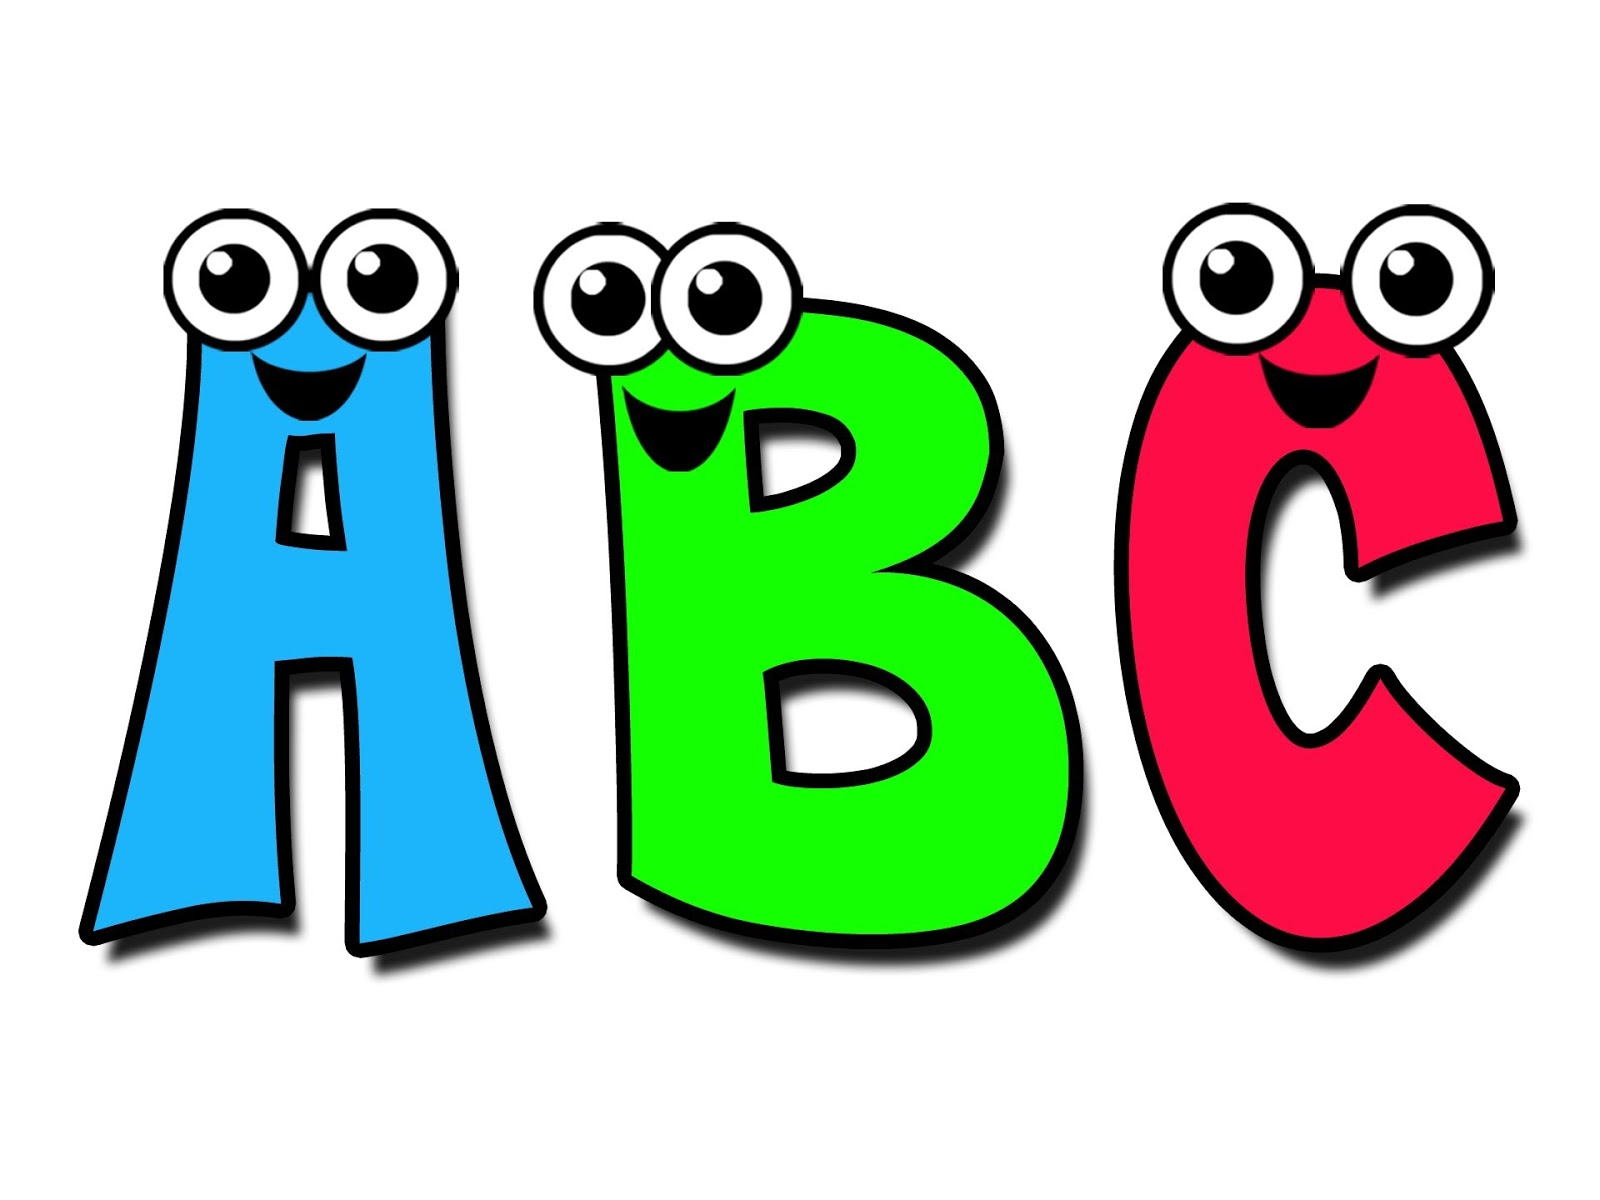 Abc clipart capital letter, Abc capital letter Transparent FREE for.